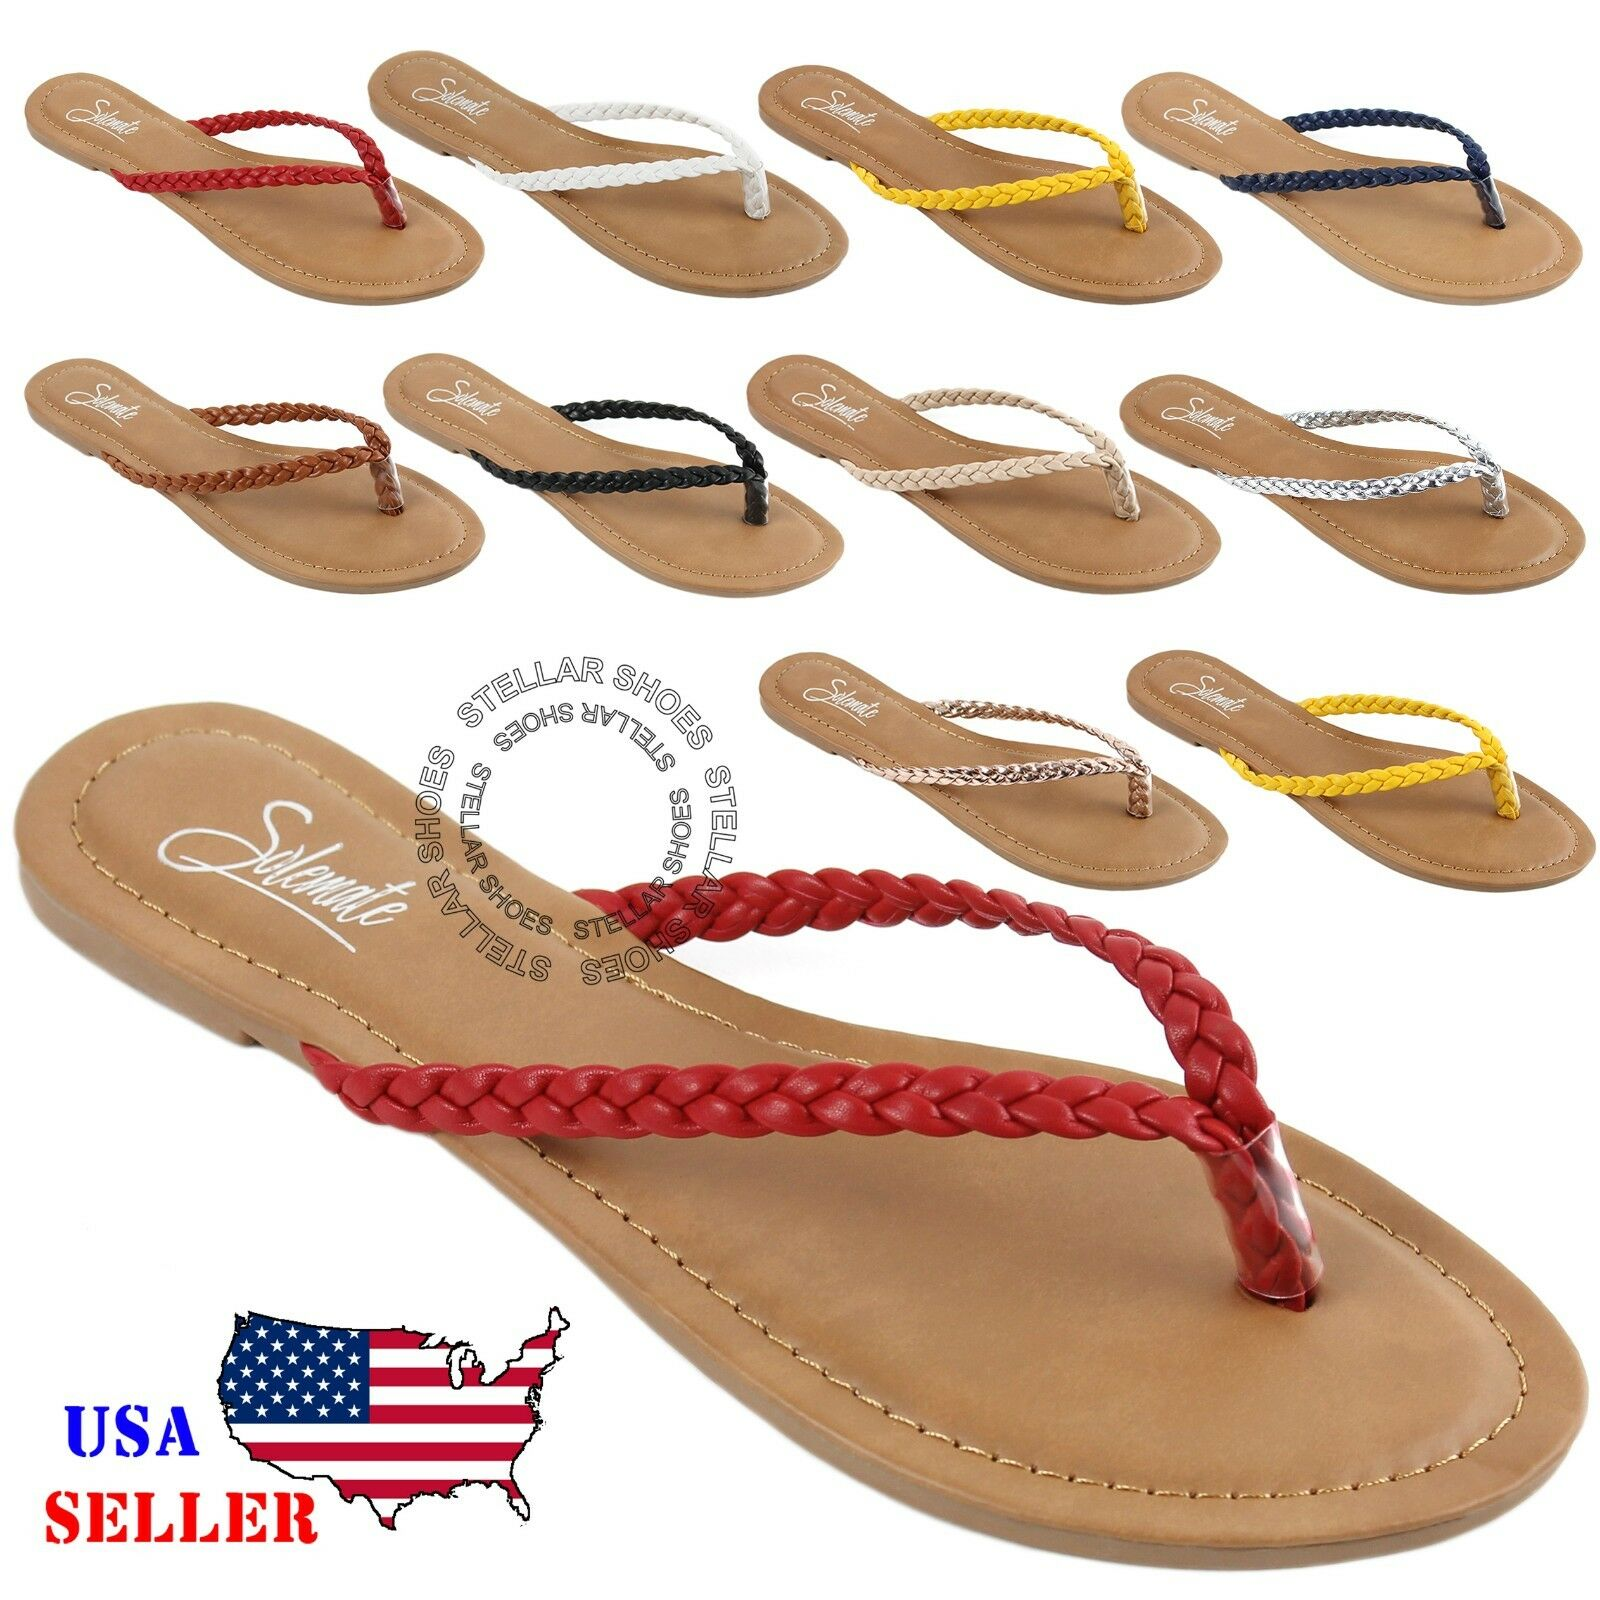 NEW Womens Summer Comfort Casual Thong Flat Flip Flops Sandals Slipper Shoes